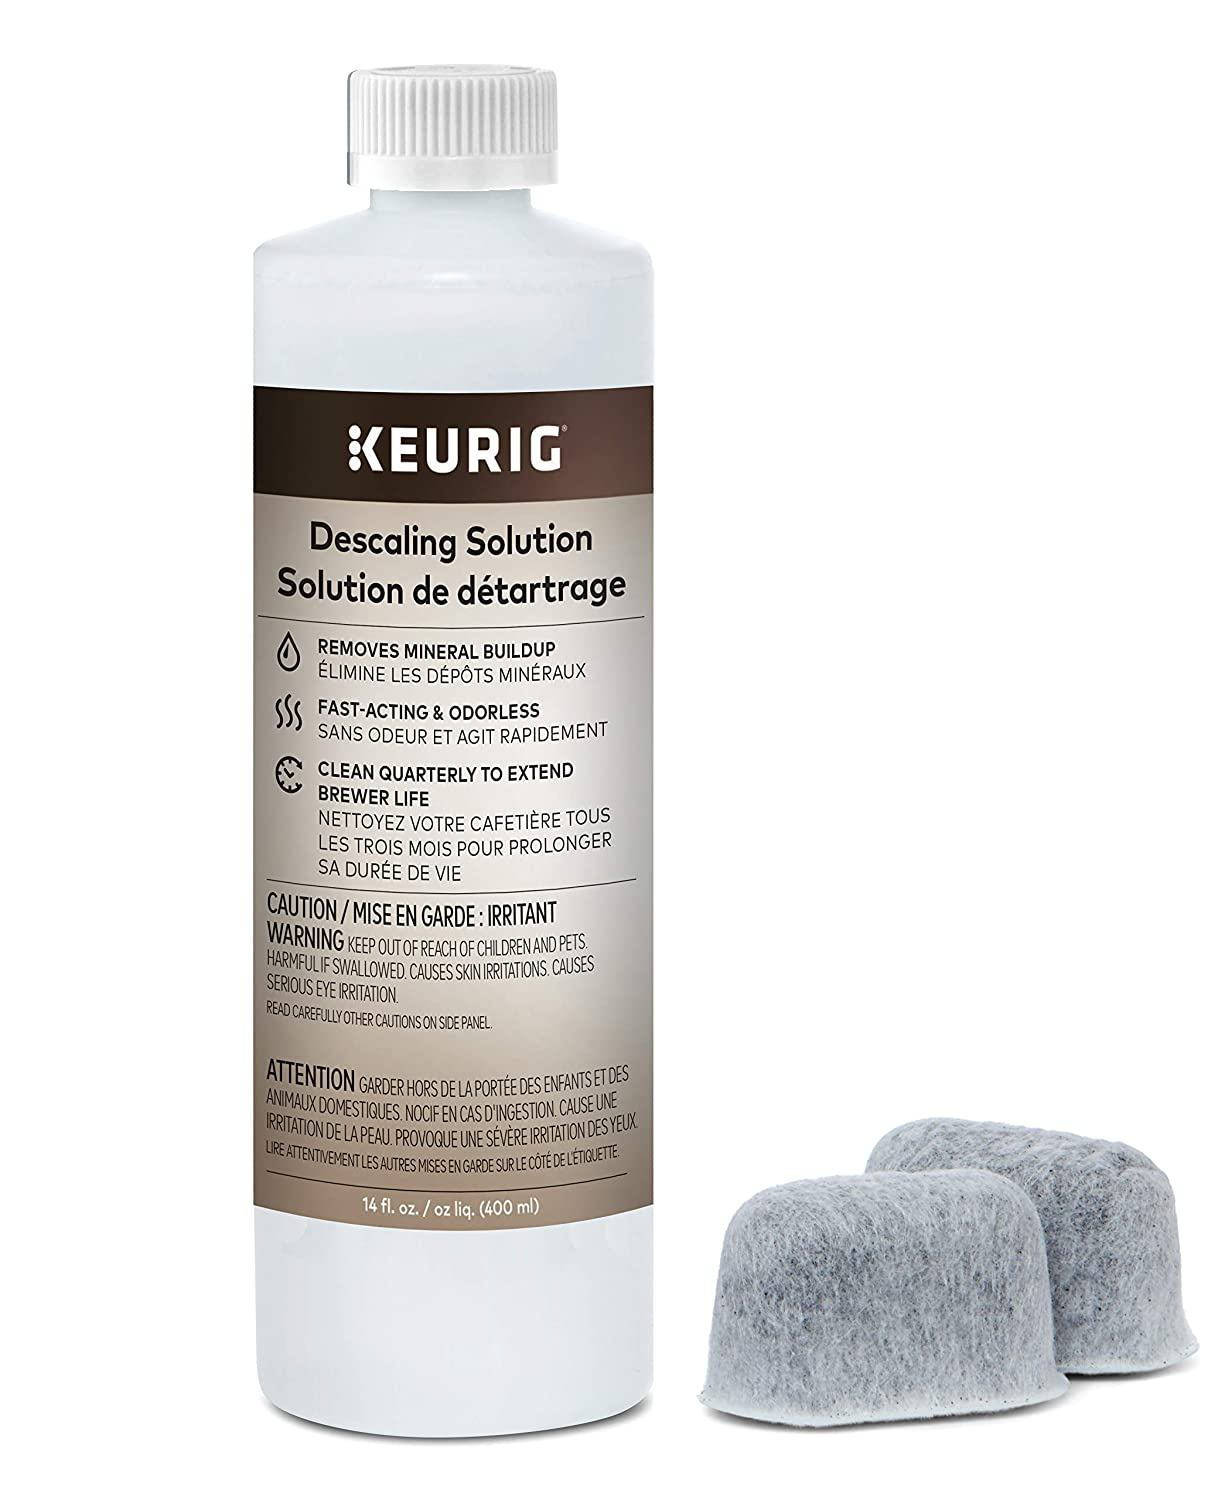 Keurig Brewer Care Kit with Descaling Solution and 2 Water Filter Cartridges, Compatible with All 2.0 and 1.0 K-Cup Pod Coffee Makers